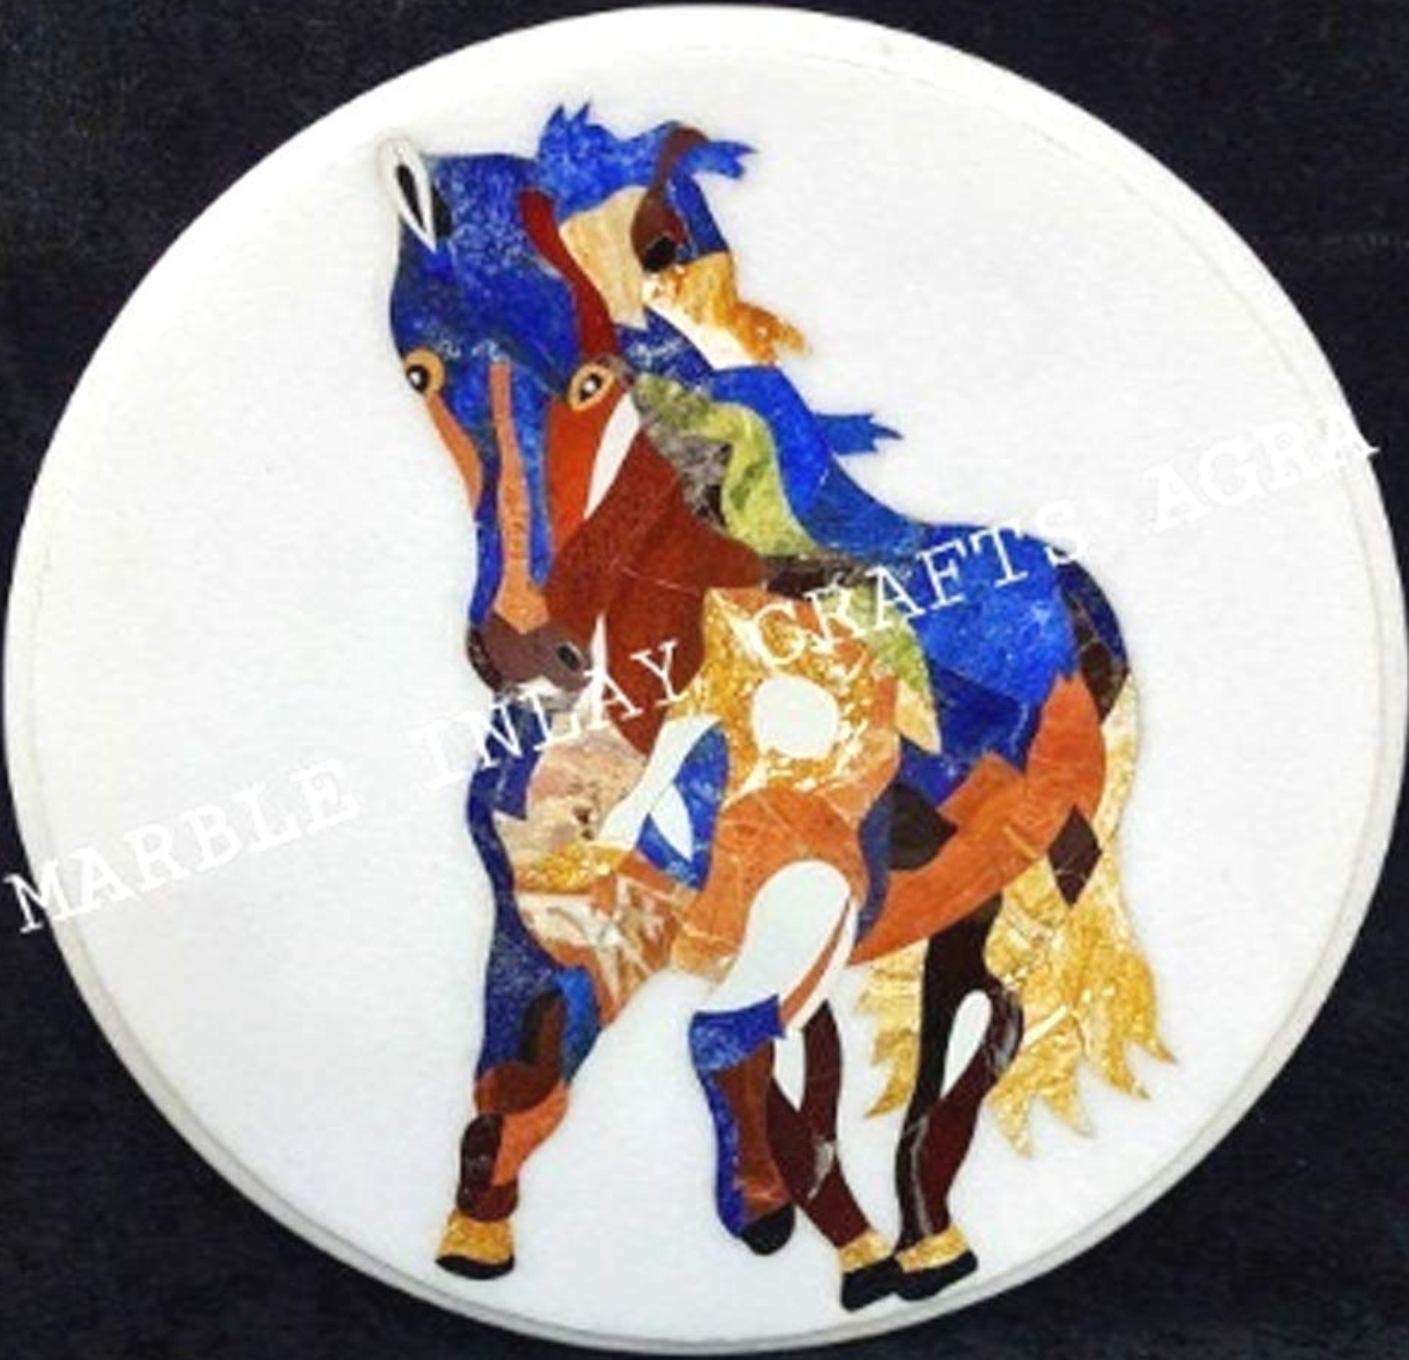 White Free shipping anywhere in the nation Marble Round Horse Inlay Ranking TOP3 Coffee Table Modern Decor Gif Art